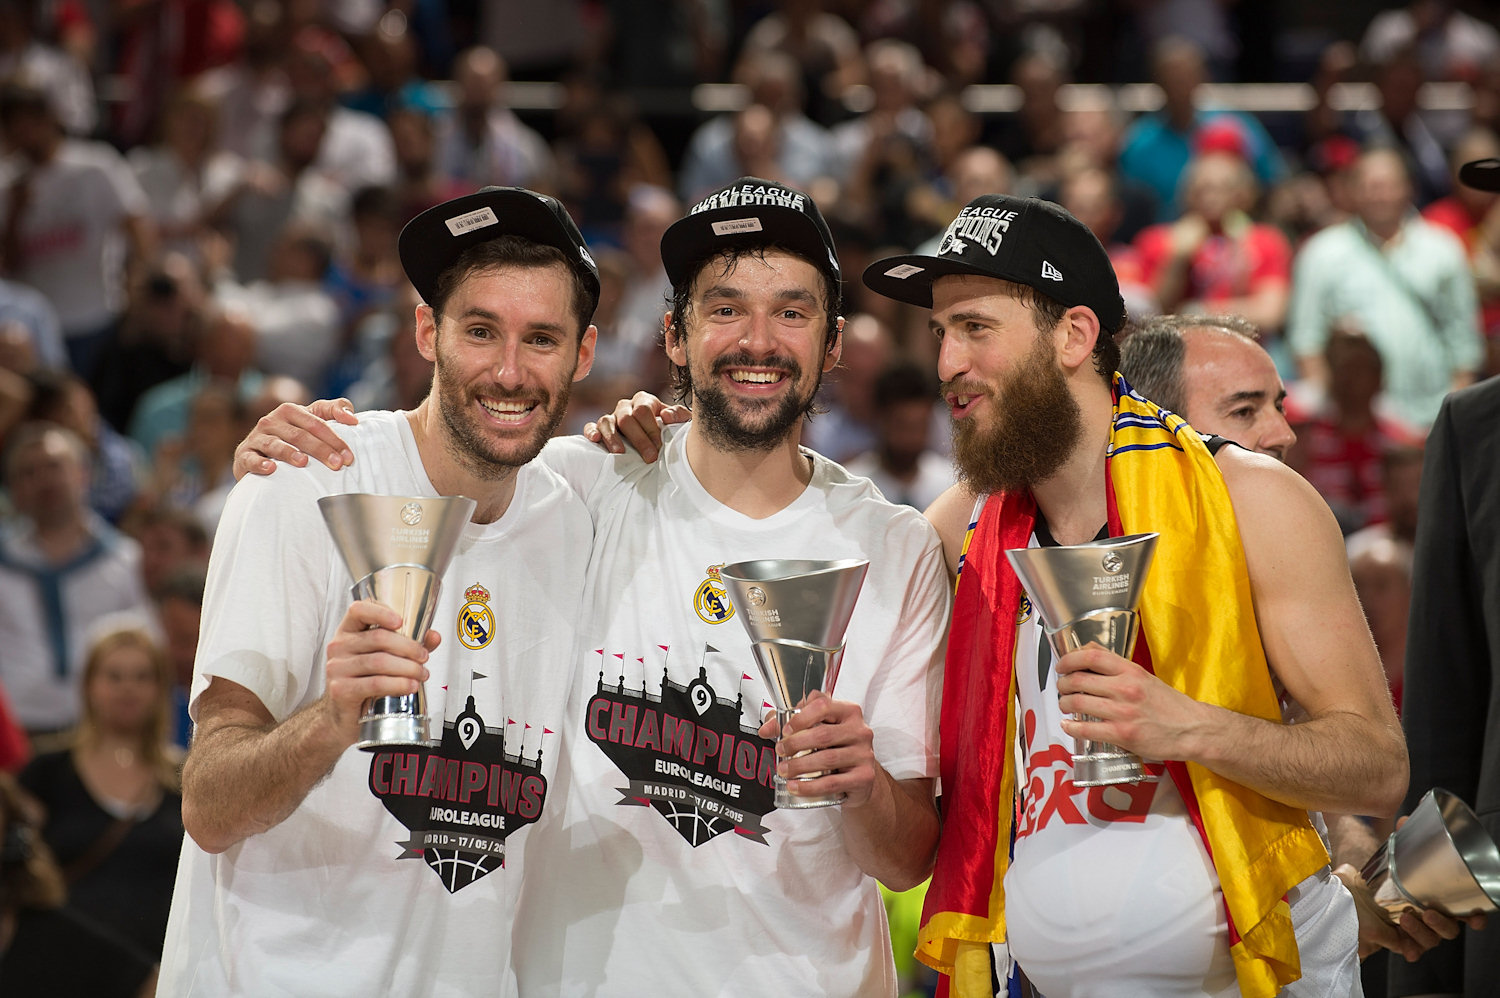 Fernandez, Llull and Rodriguez - Real Madrid champ Euroleague 2014-15 - Final Four Madrid 2015 - EB14